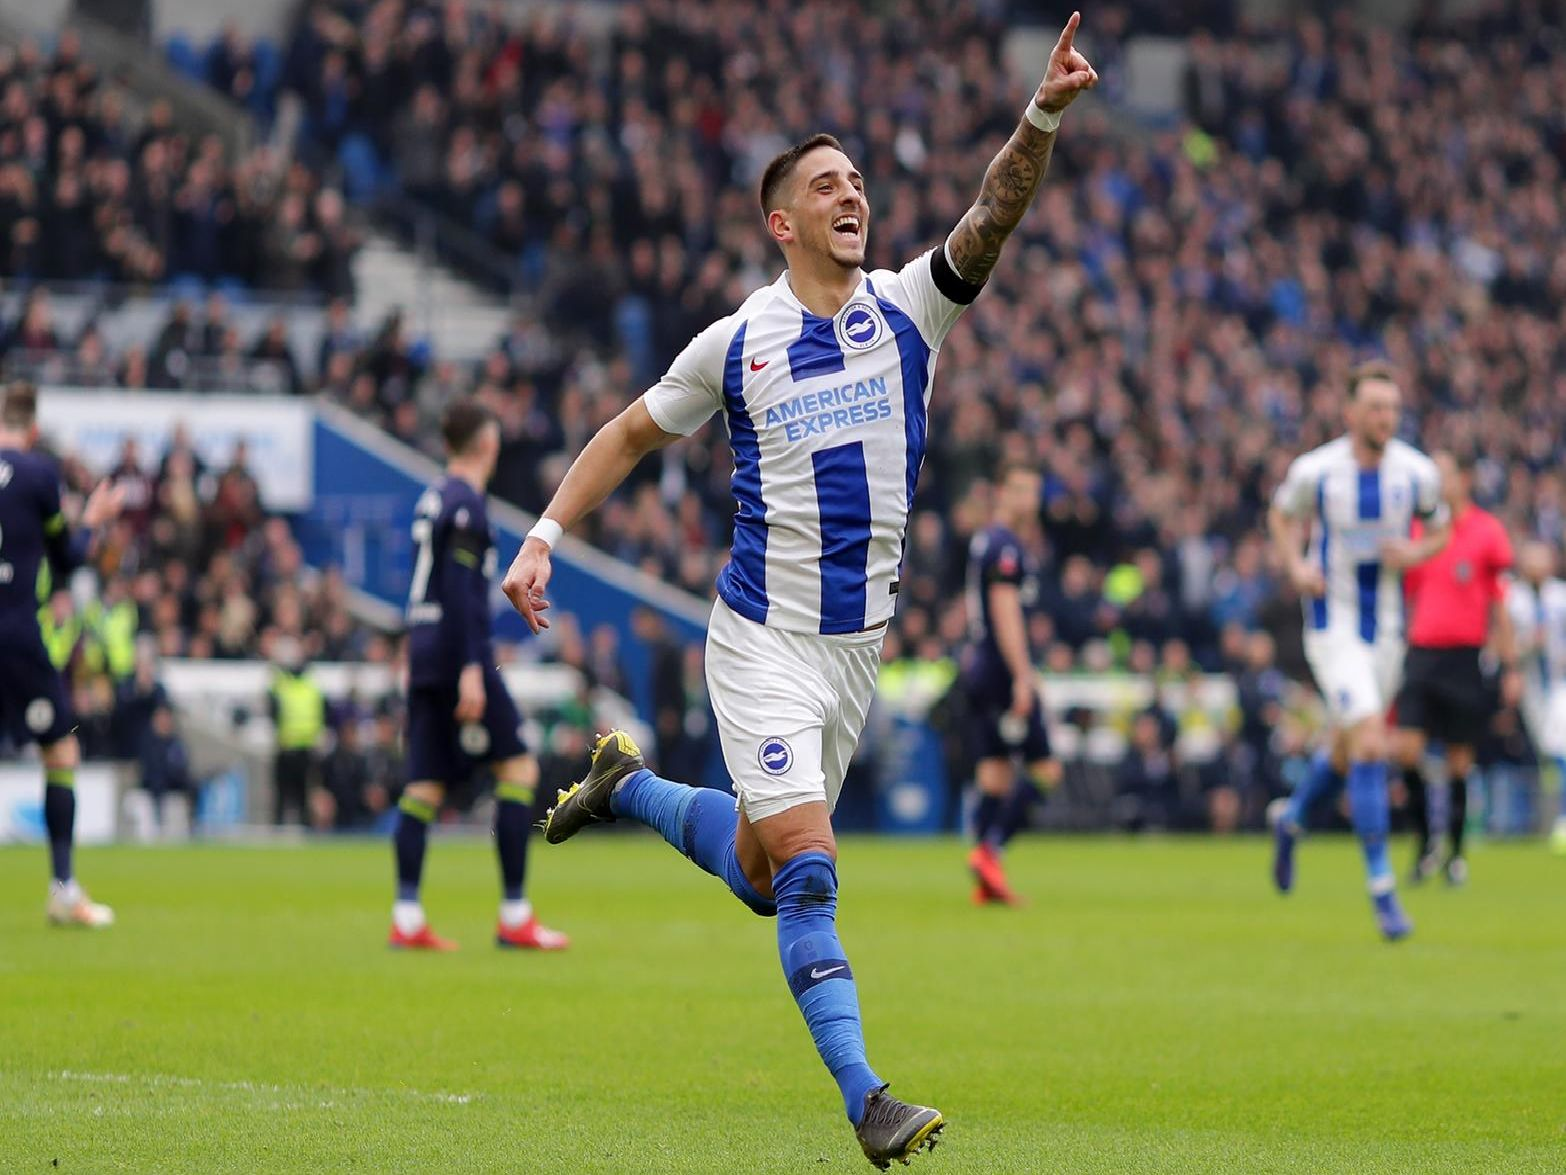 Anthony Knockaert celebrates a goal at the Amex. Picture by Getty Images